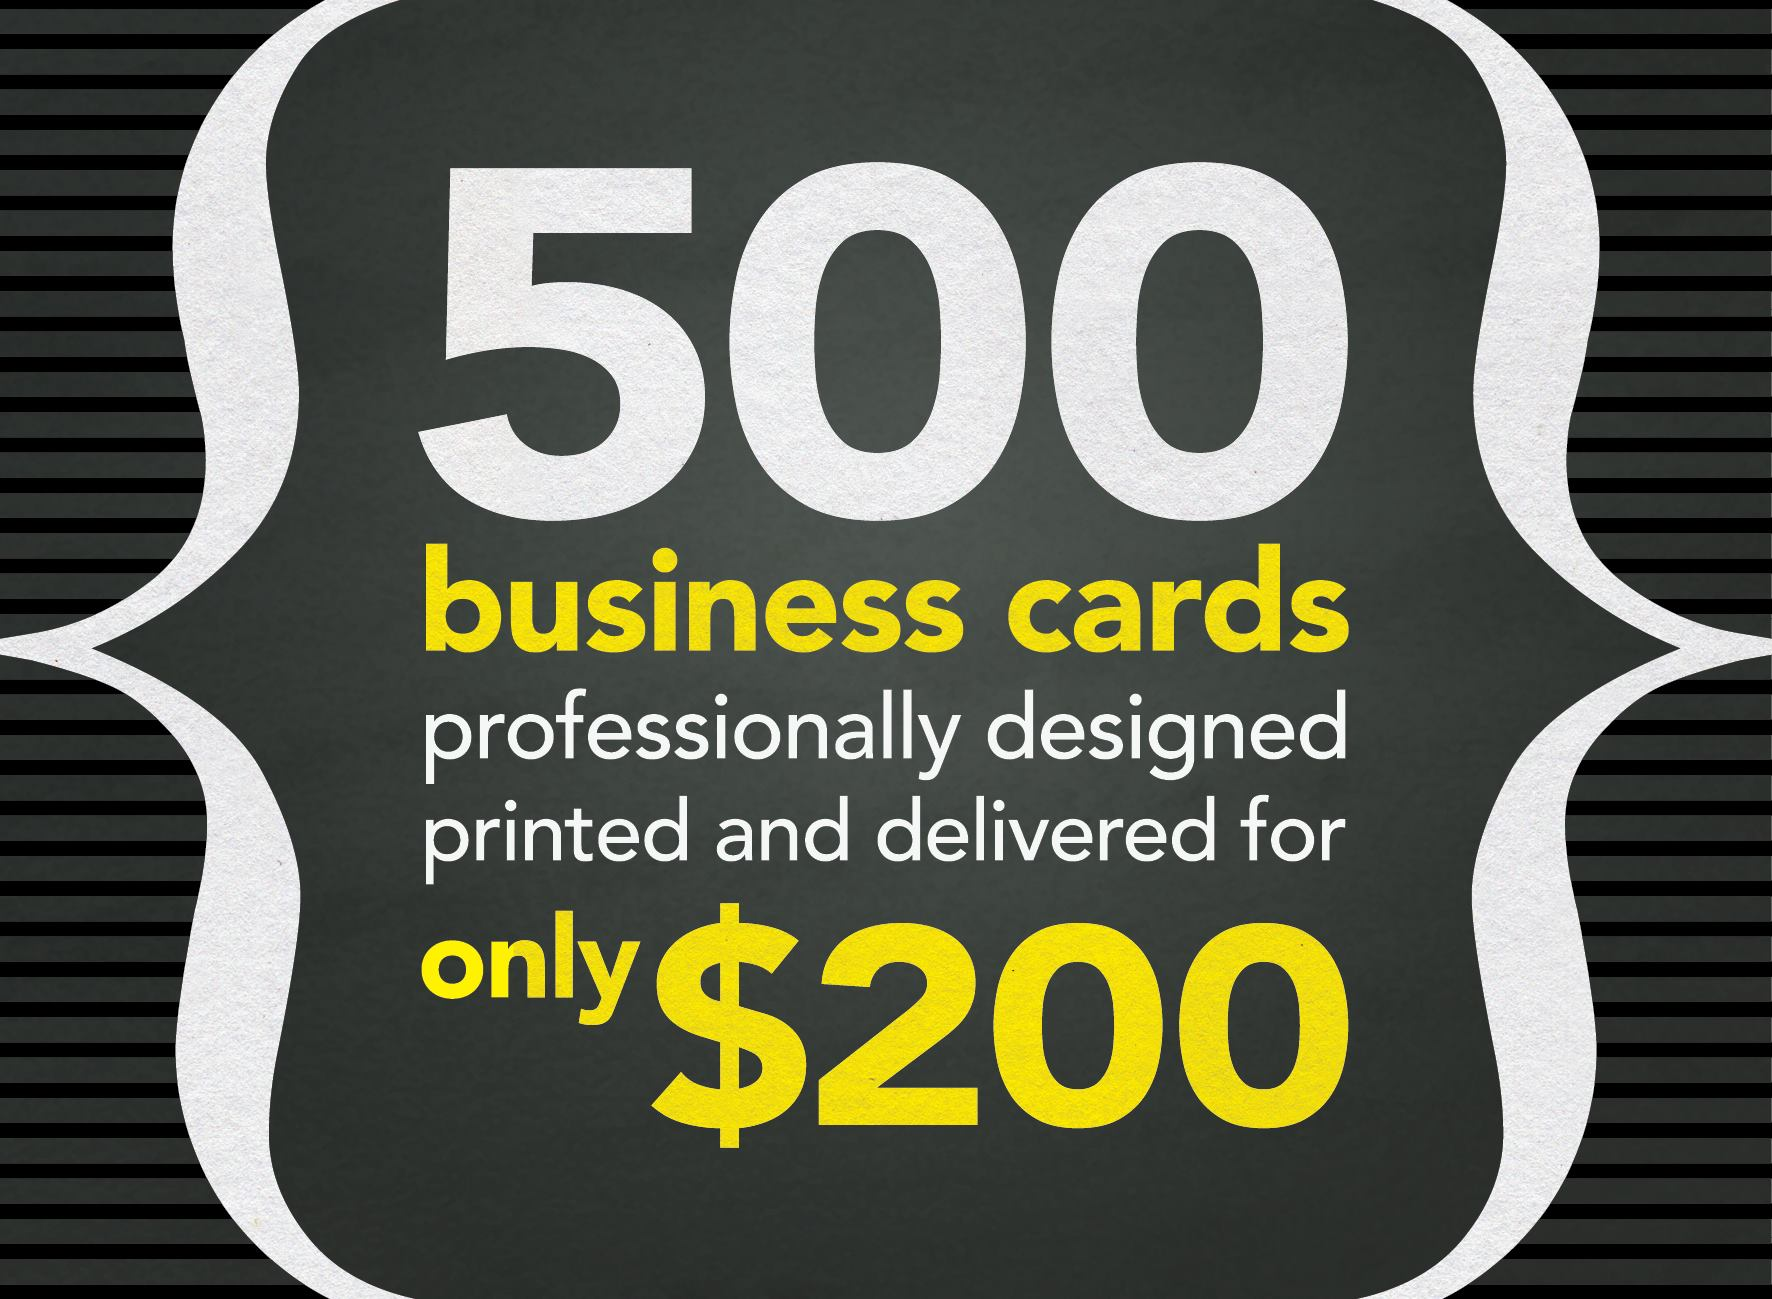 500 Business Cards professionally designed printed and delivered for only $200